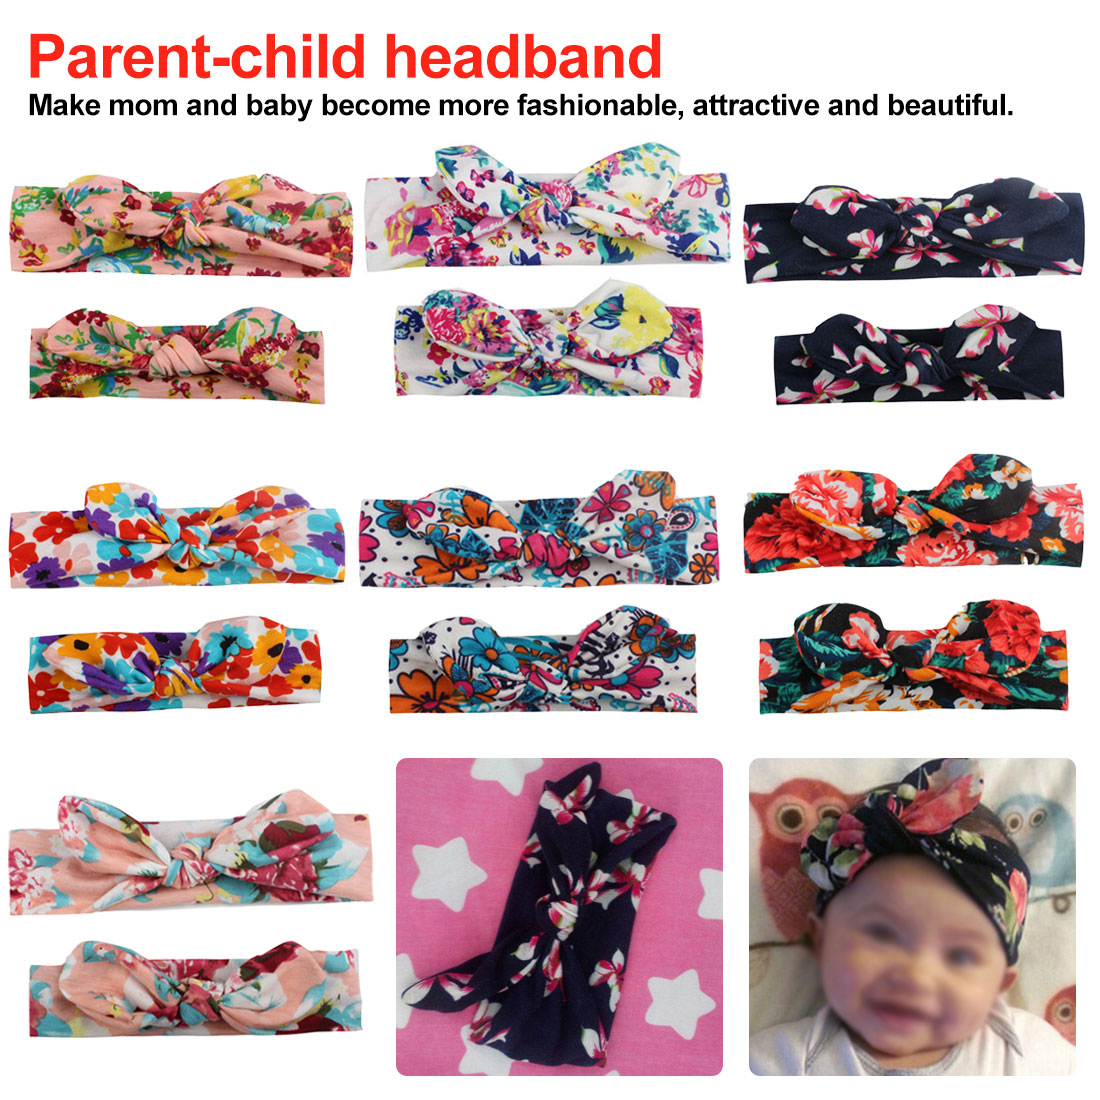 2pcs-set-mom-mother-daughter-kids-baby-girl-bow-headband-hair-band-accessories-parent-child-family-headwear